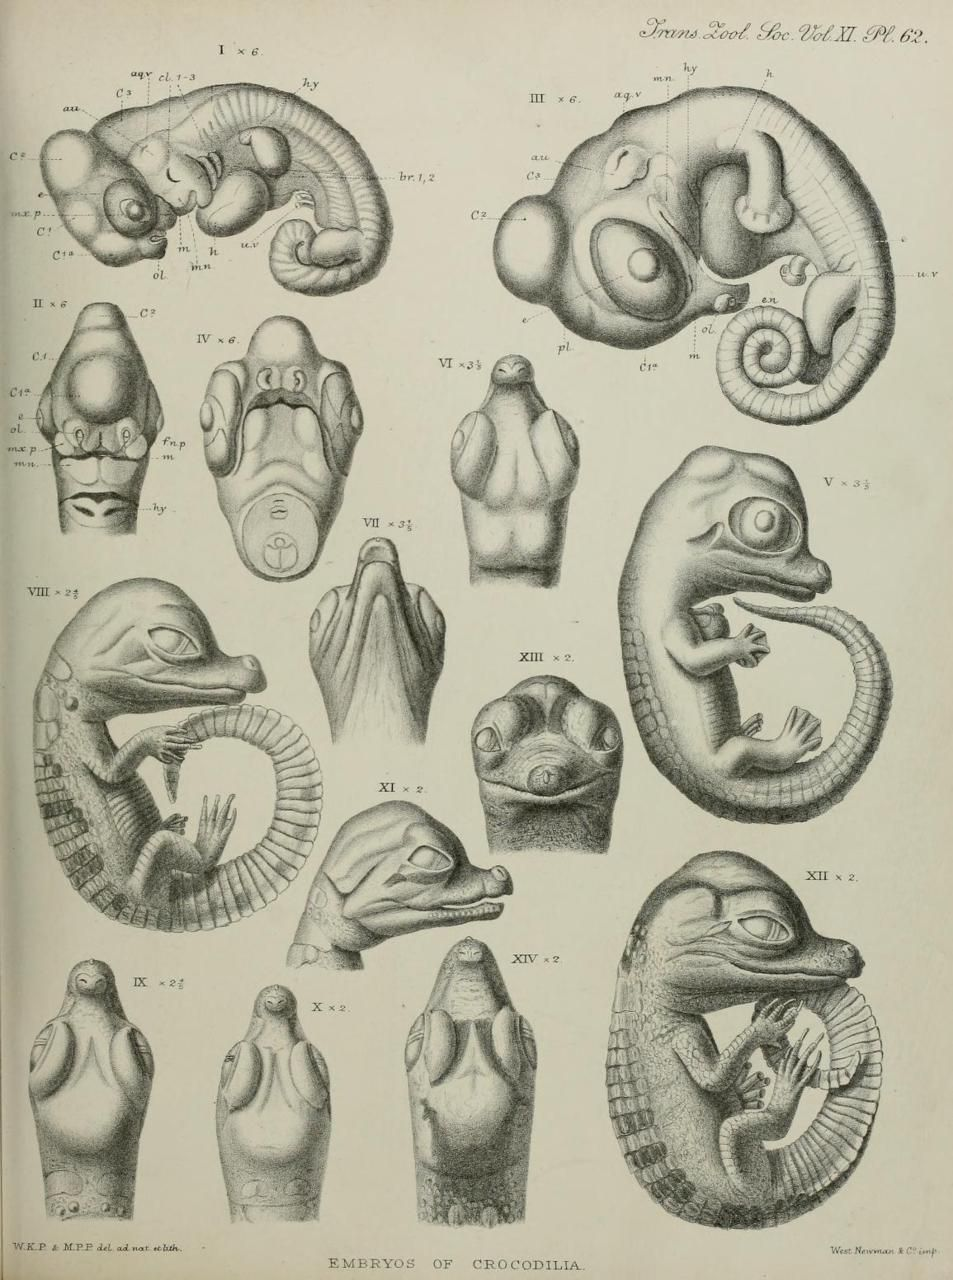 Alligator and Crocodile Embryos. Transactions of the Zoological ...